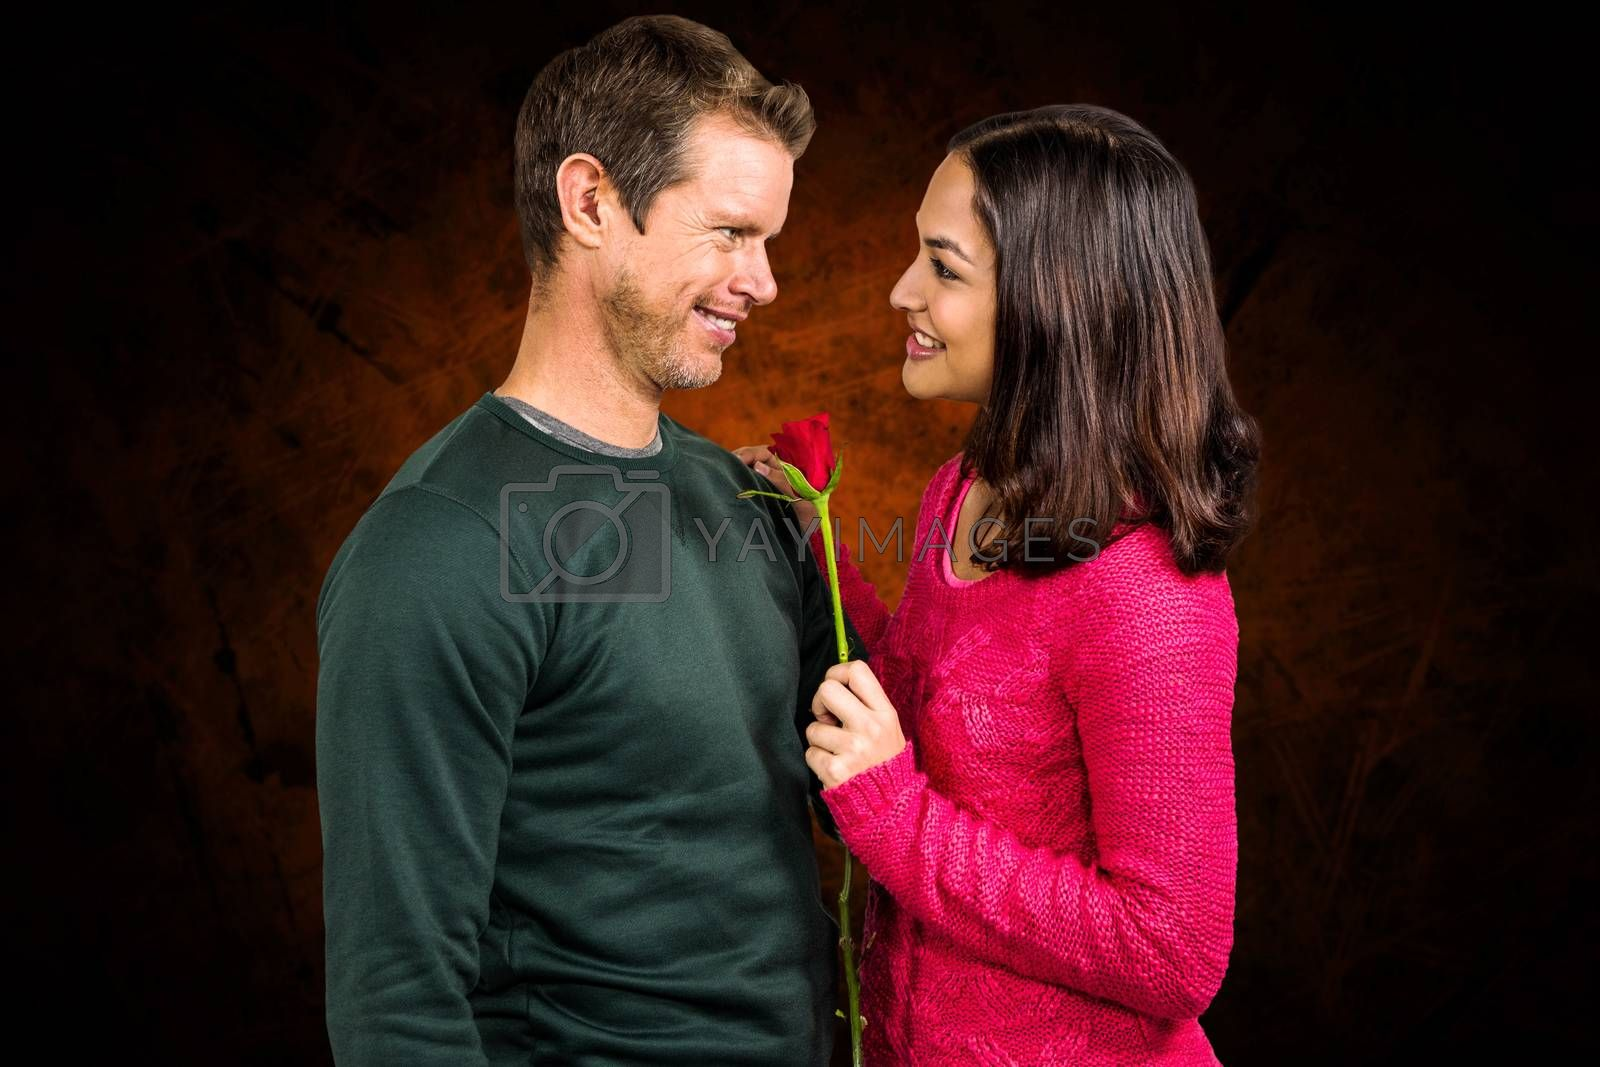 Smiling couple with red rose  against shades of brown